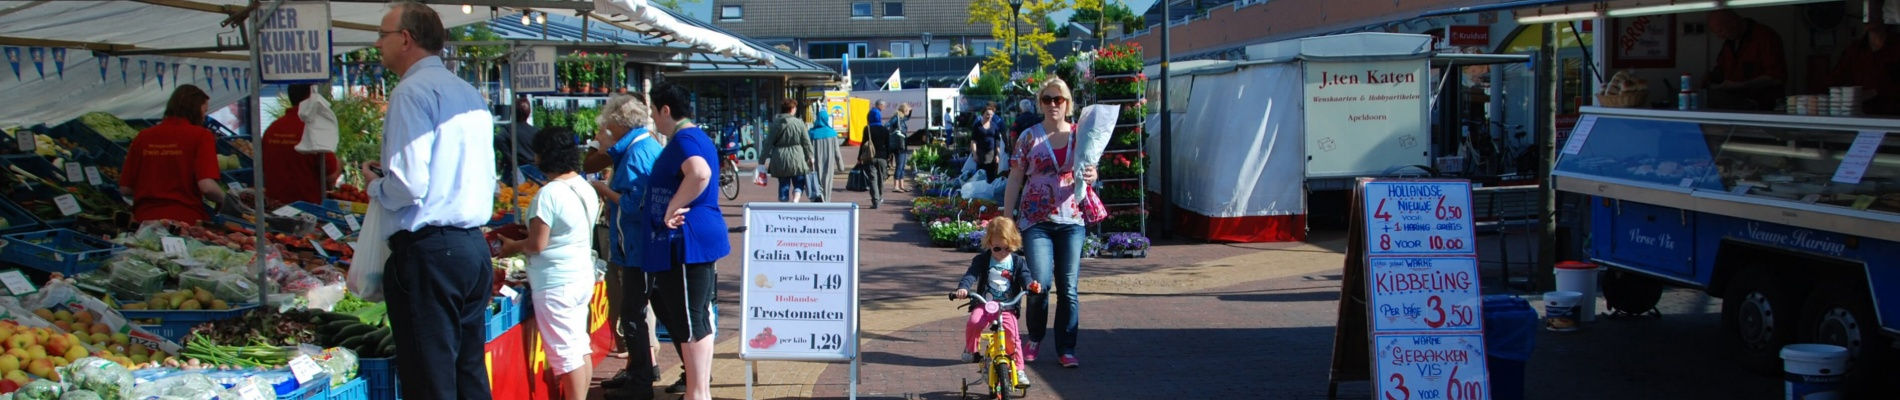 de-weekmarkt-warnsveld-header